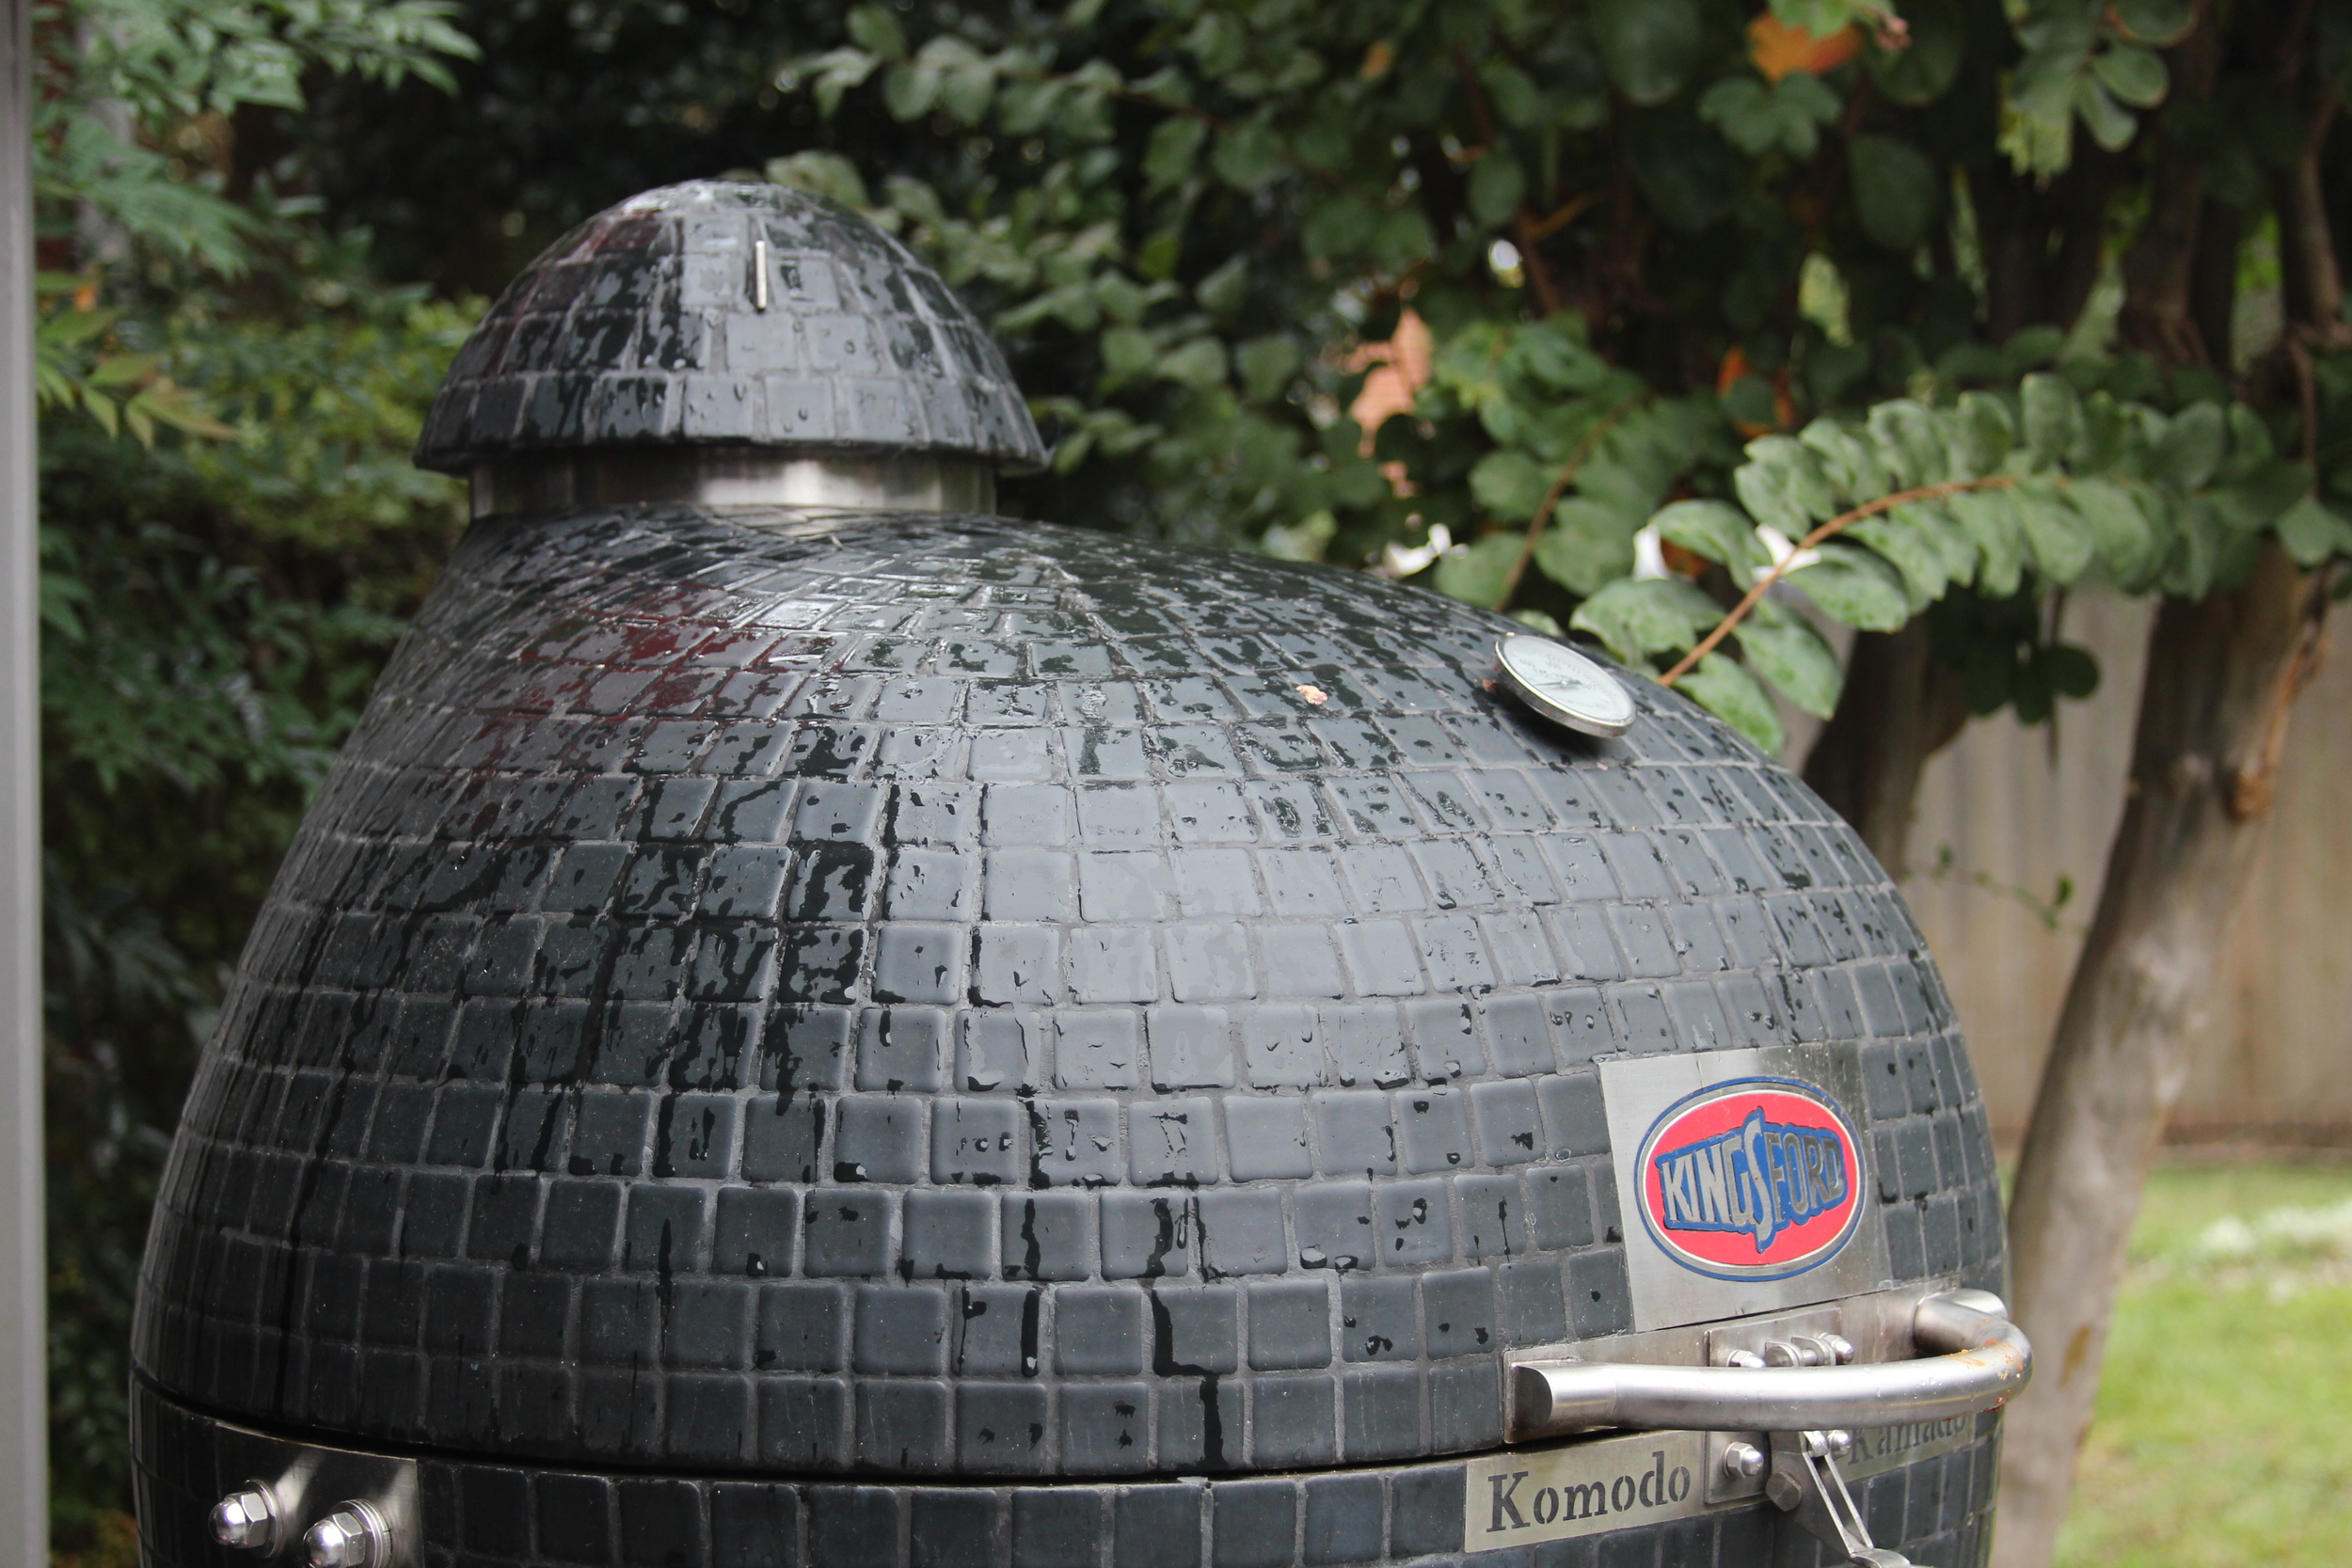 Tips for Grilling in the Rain